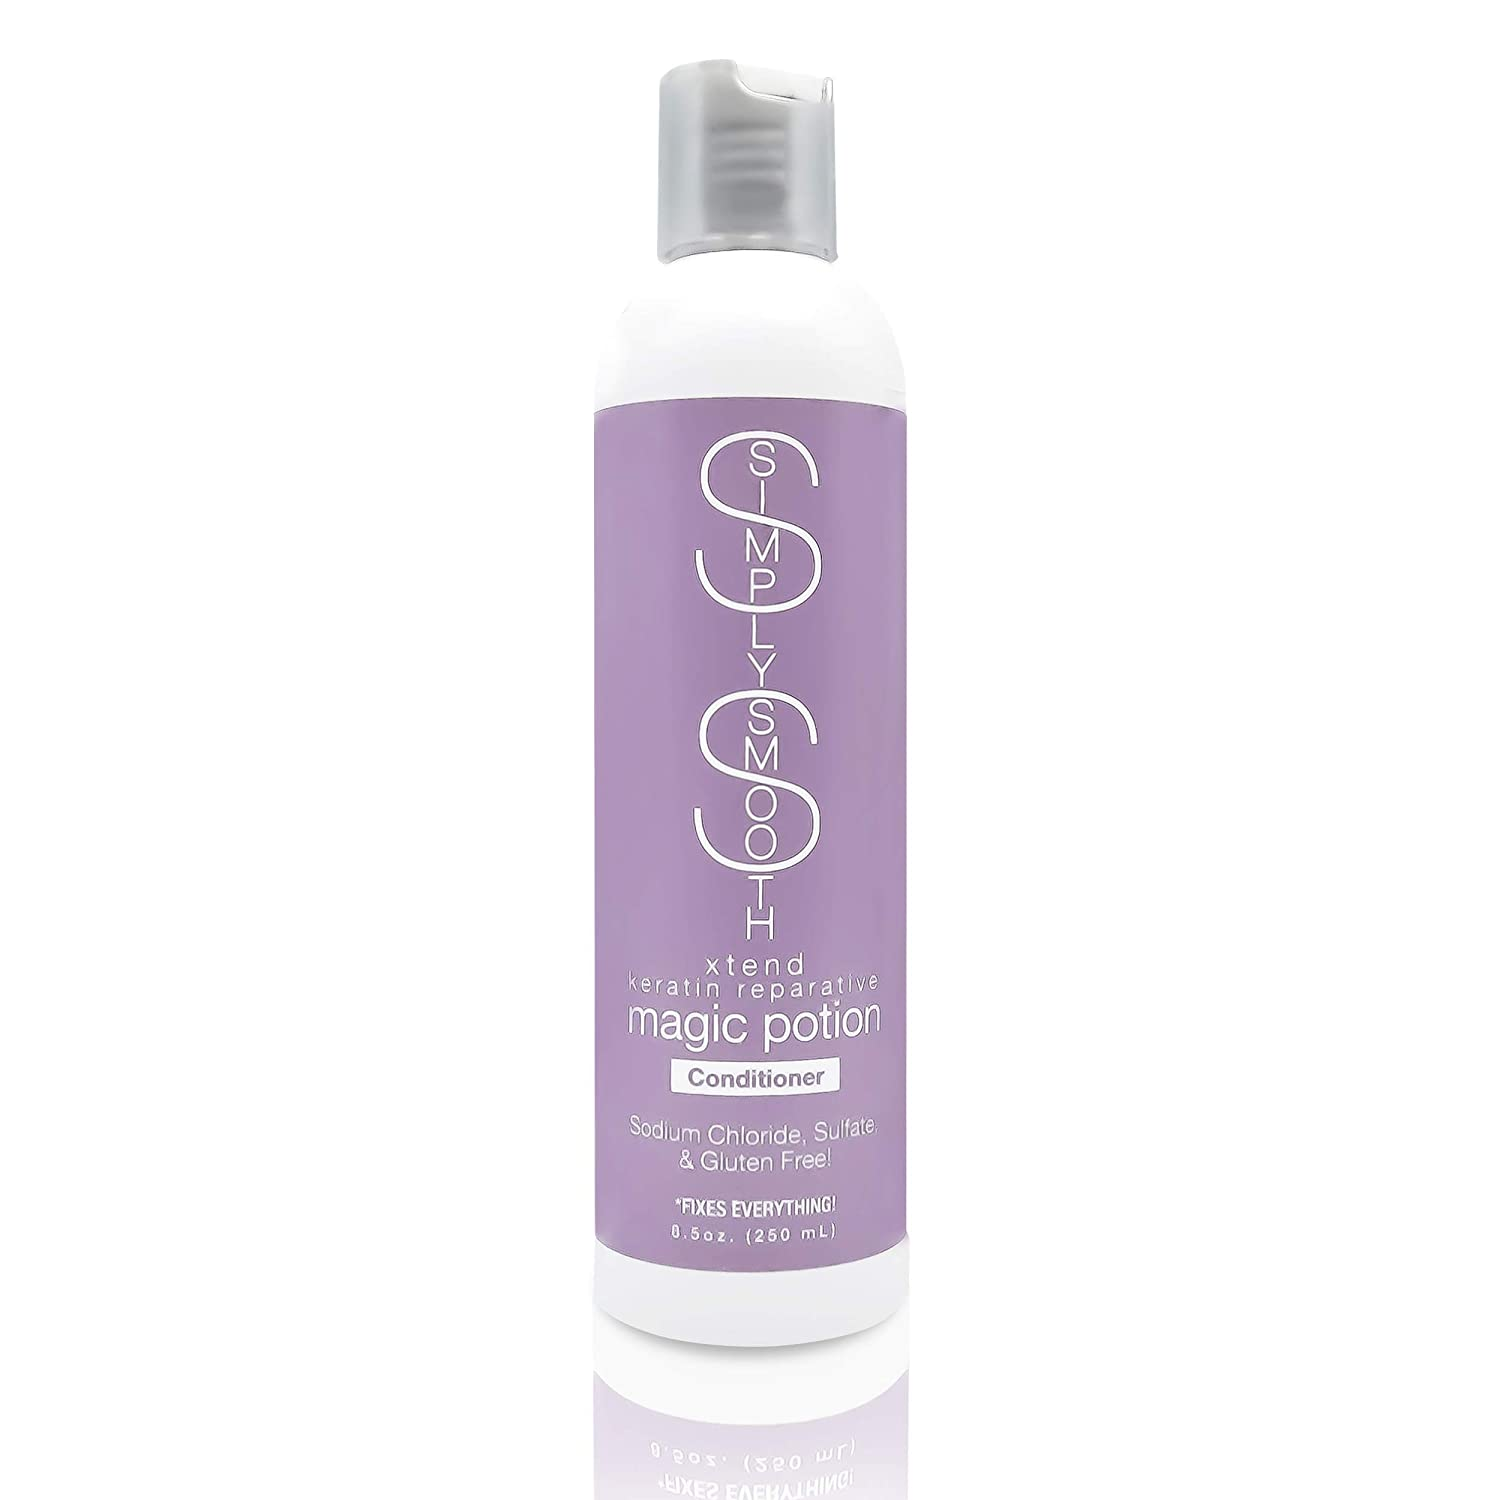 Simply Smooth Keratin Reparative Magic Ranking TOP9 Potion Conditioner - Coll New popularity